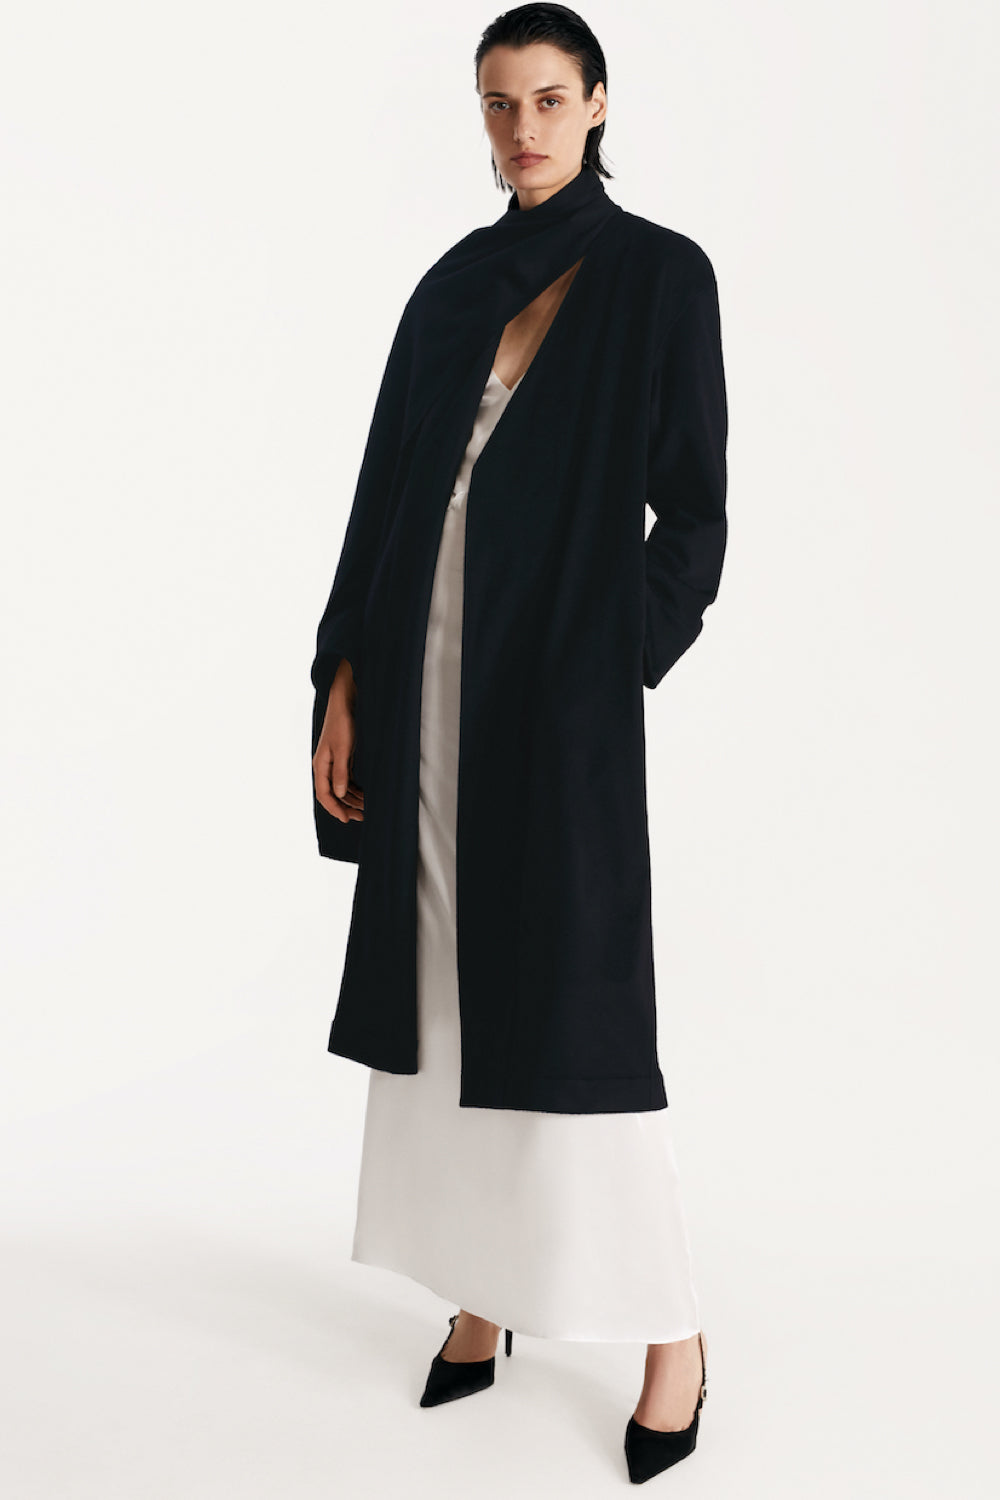 Eco-cashmere wrap coat with attached scarf in navy